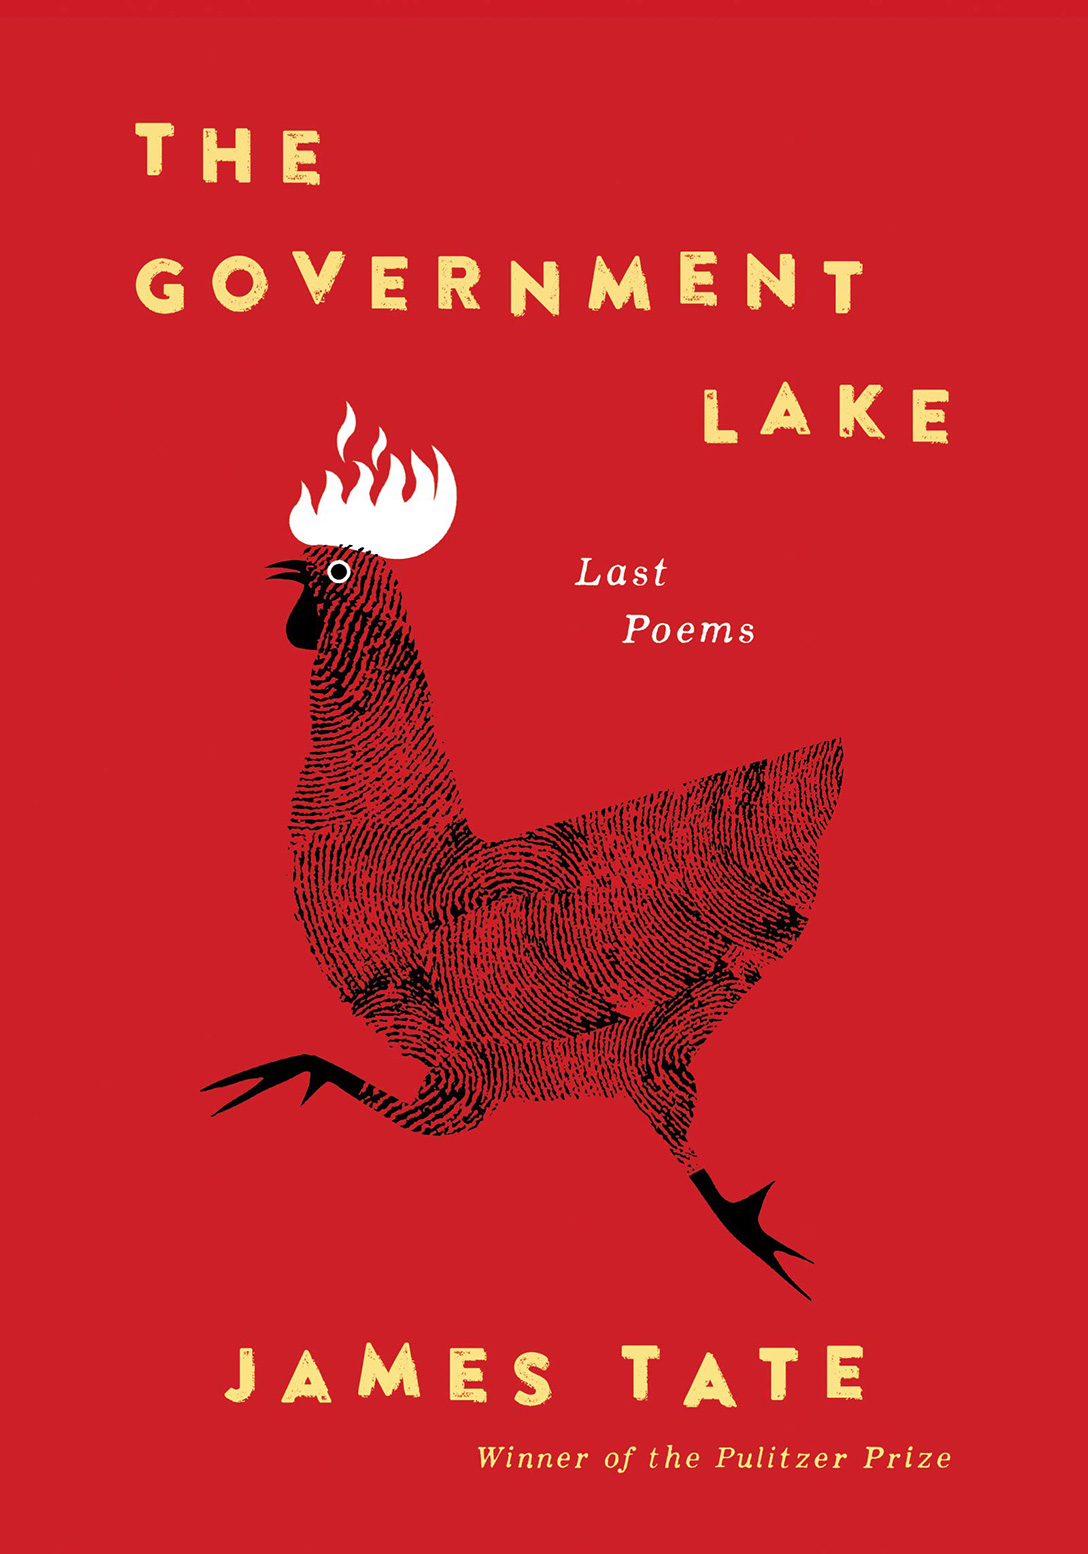 Book cover of The Government Lake by James Tate